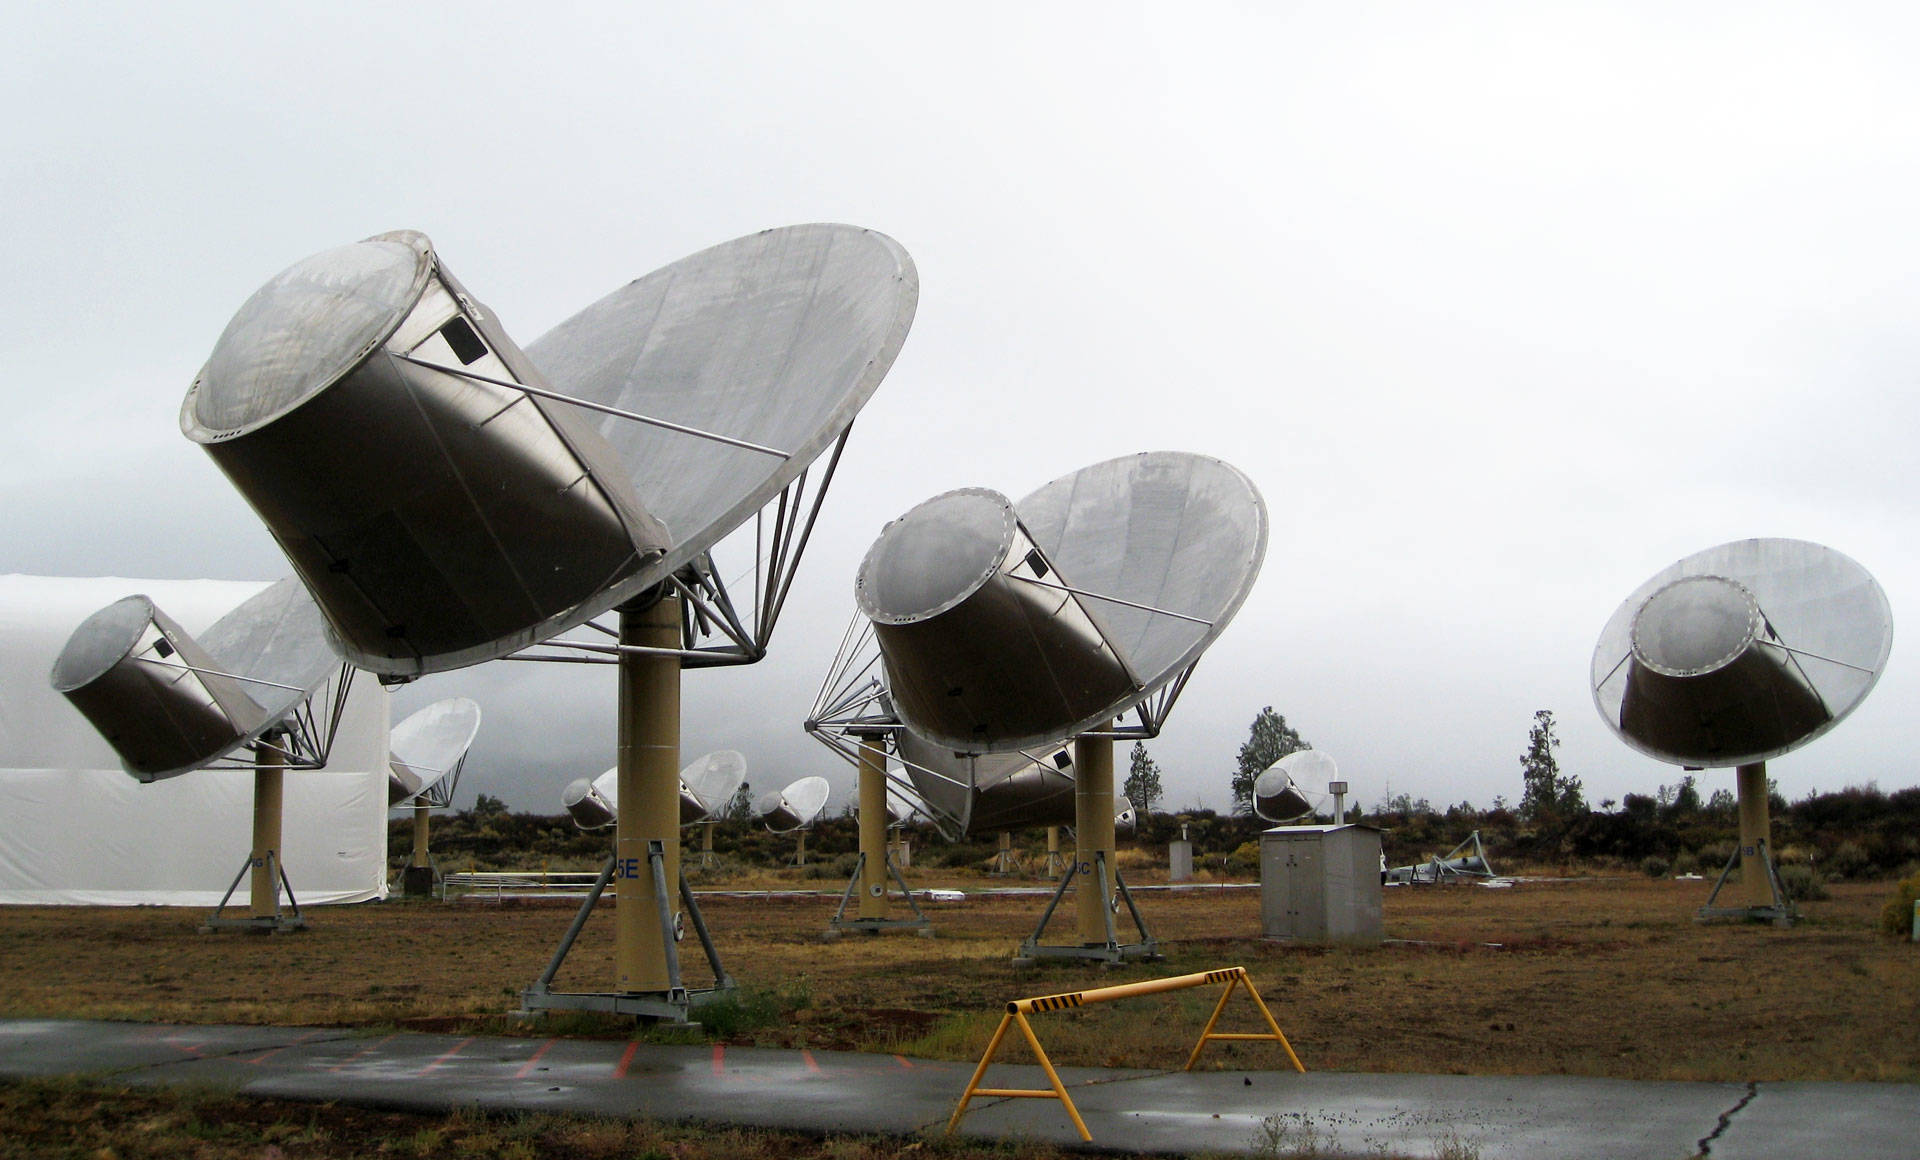 The SETI Institute's Allen Telescope Array in Hat Creek has been turned toward HD 164595 since Sunday evening, looking for a repeat of the signal. J Brew/Flickr